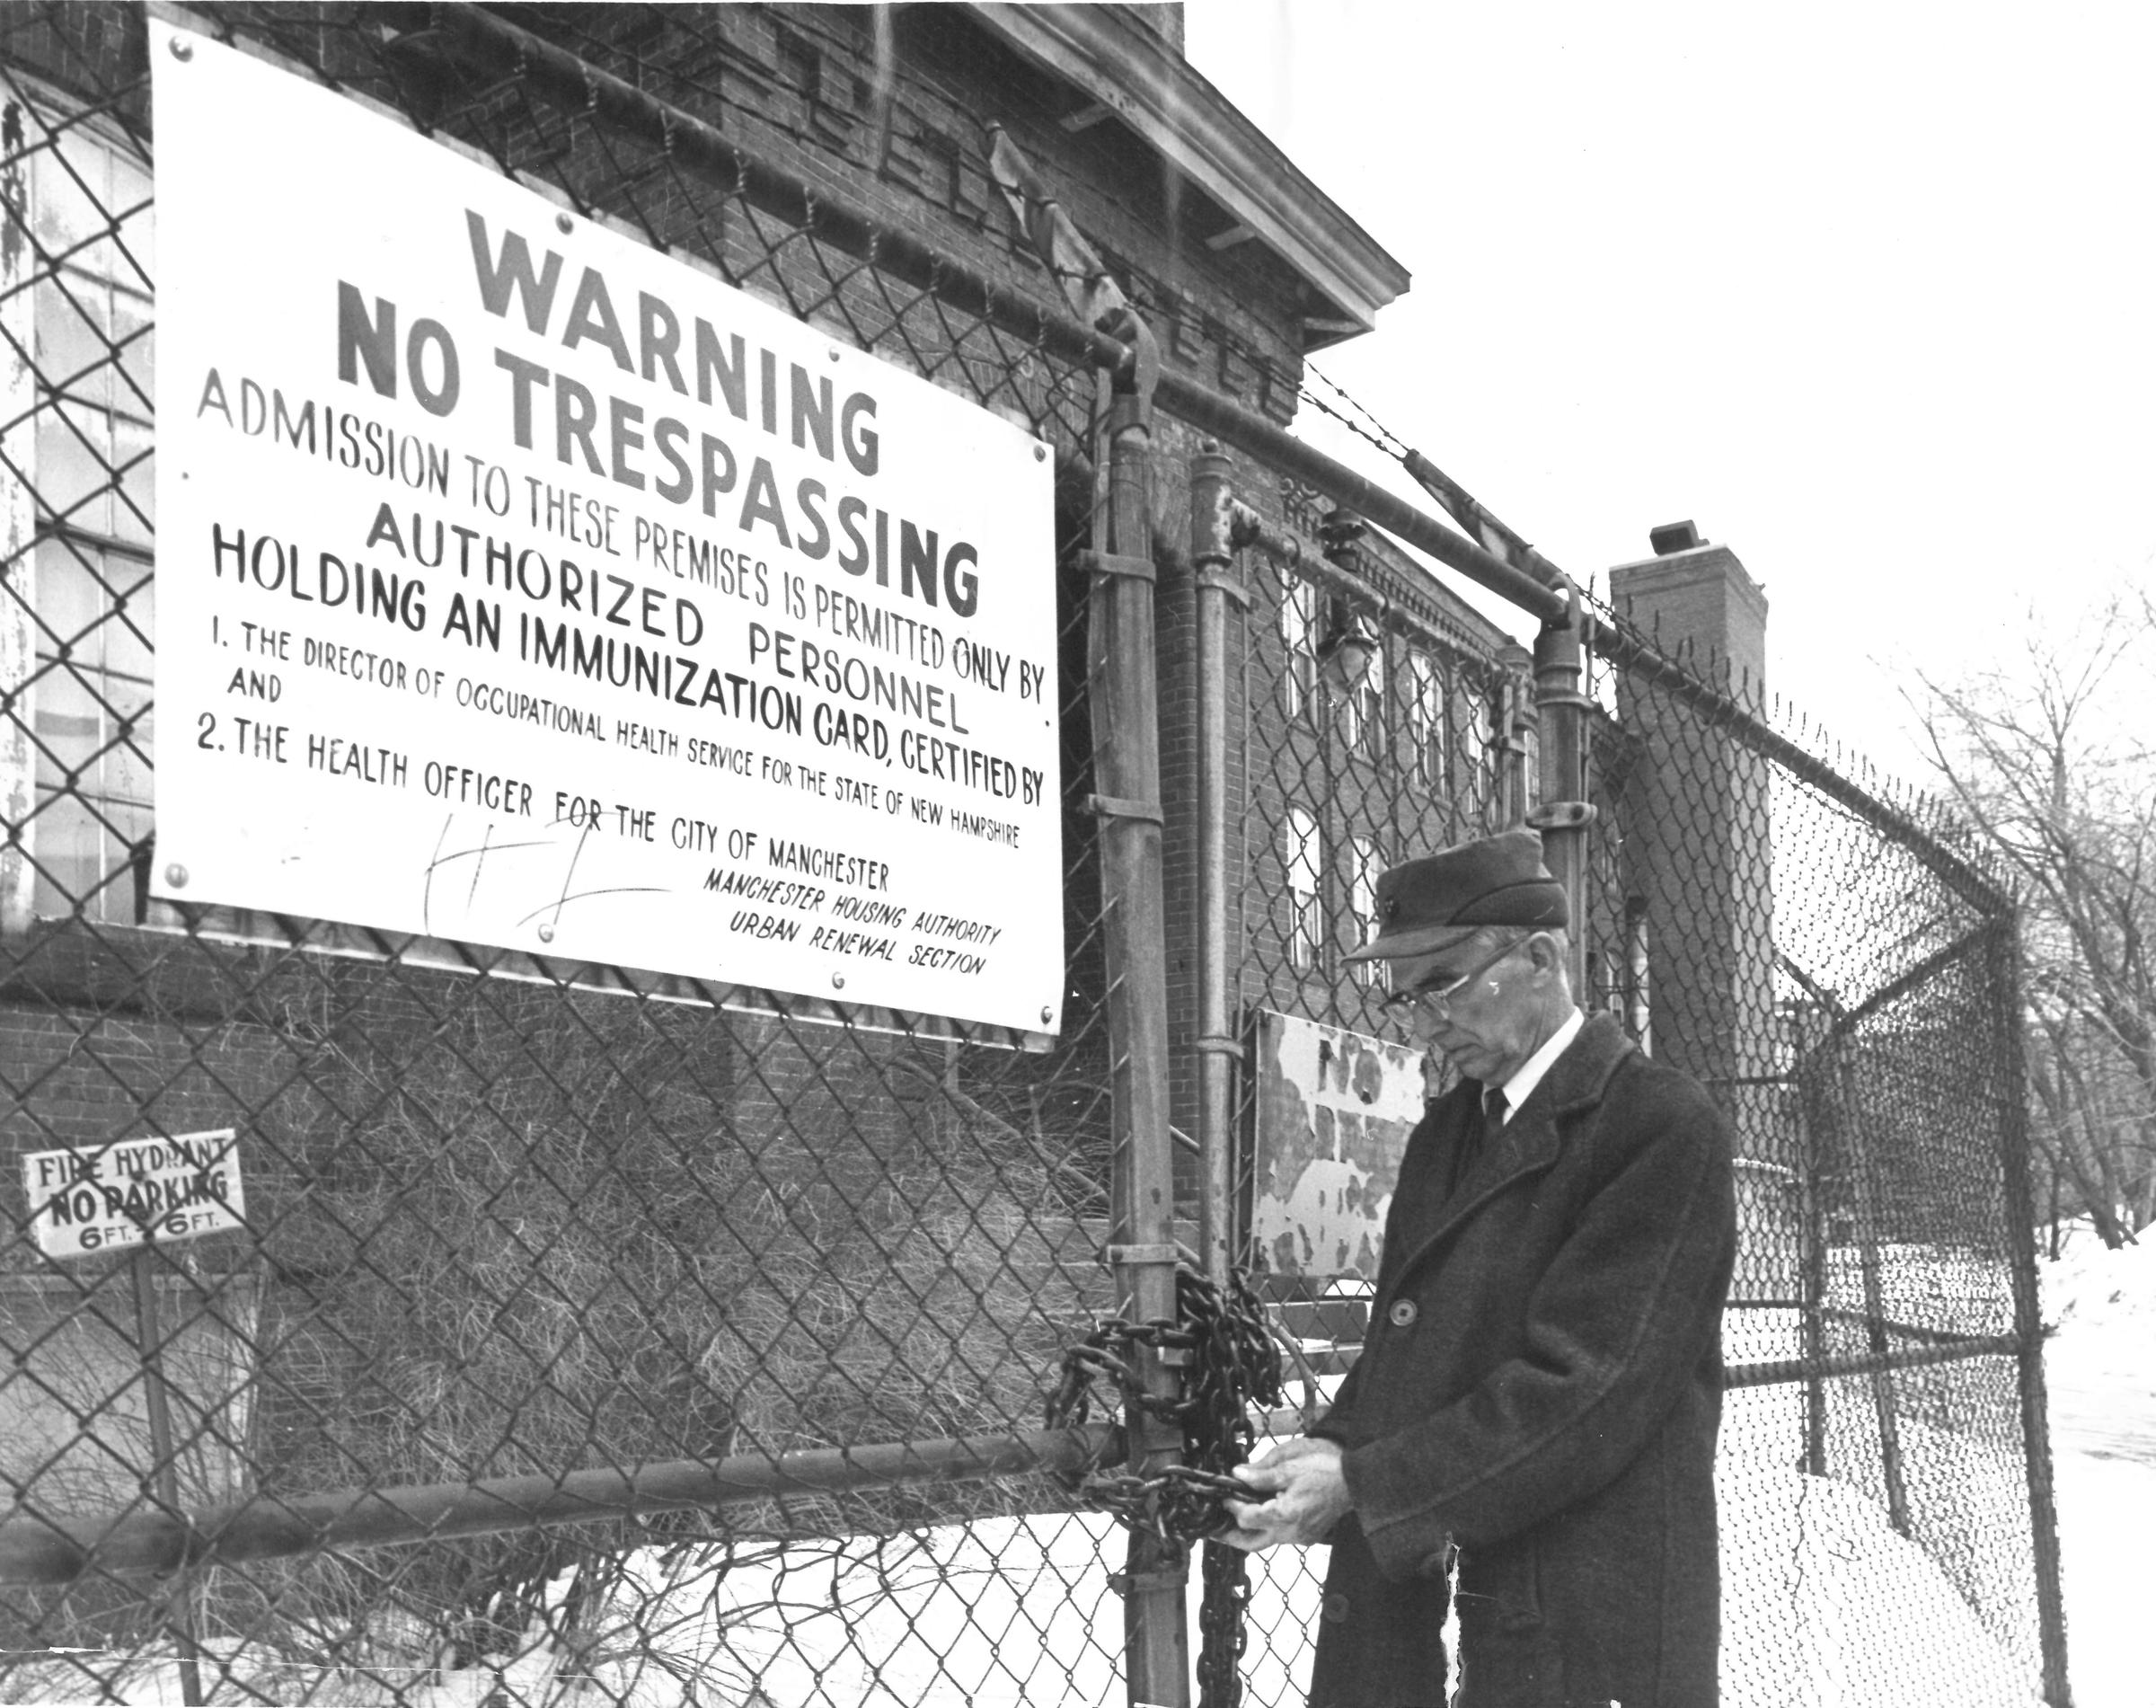 53c7712e28db Anthrax in Manchester  Revisiting the Arms Mill Outbreak of 1957 ...